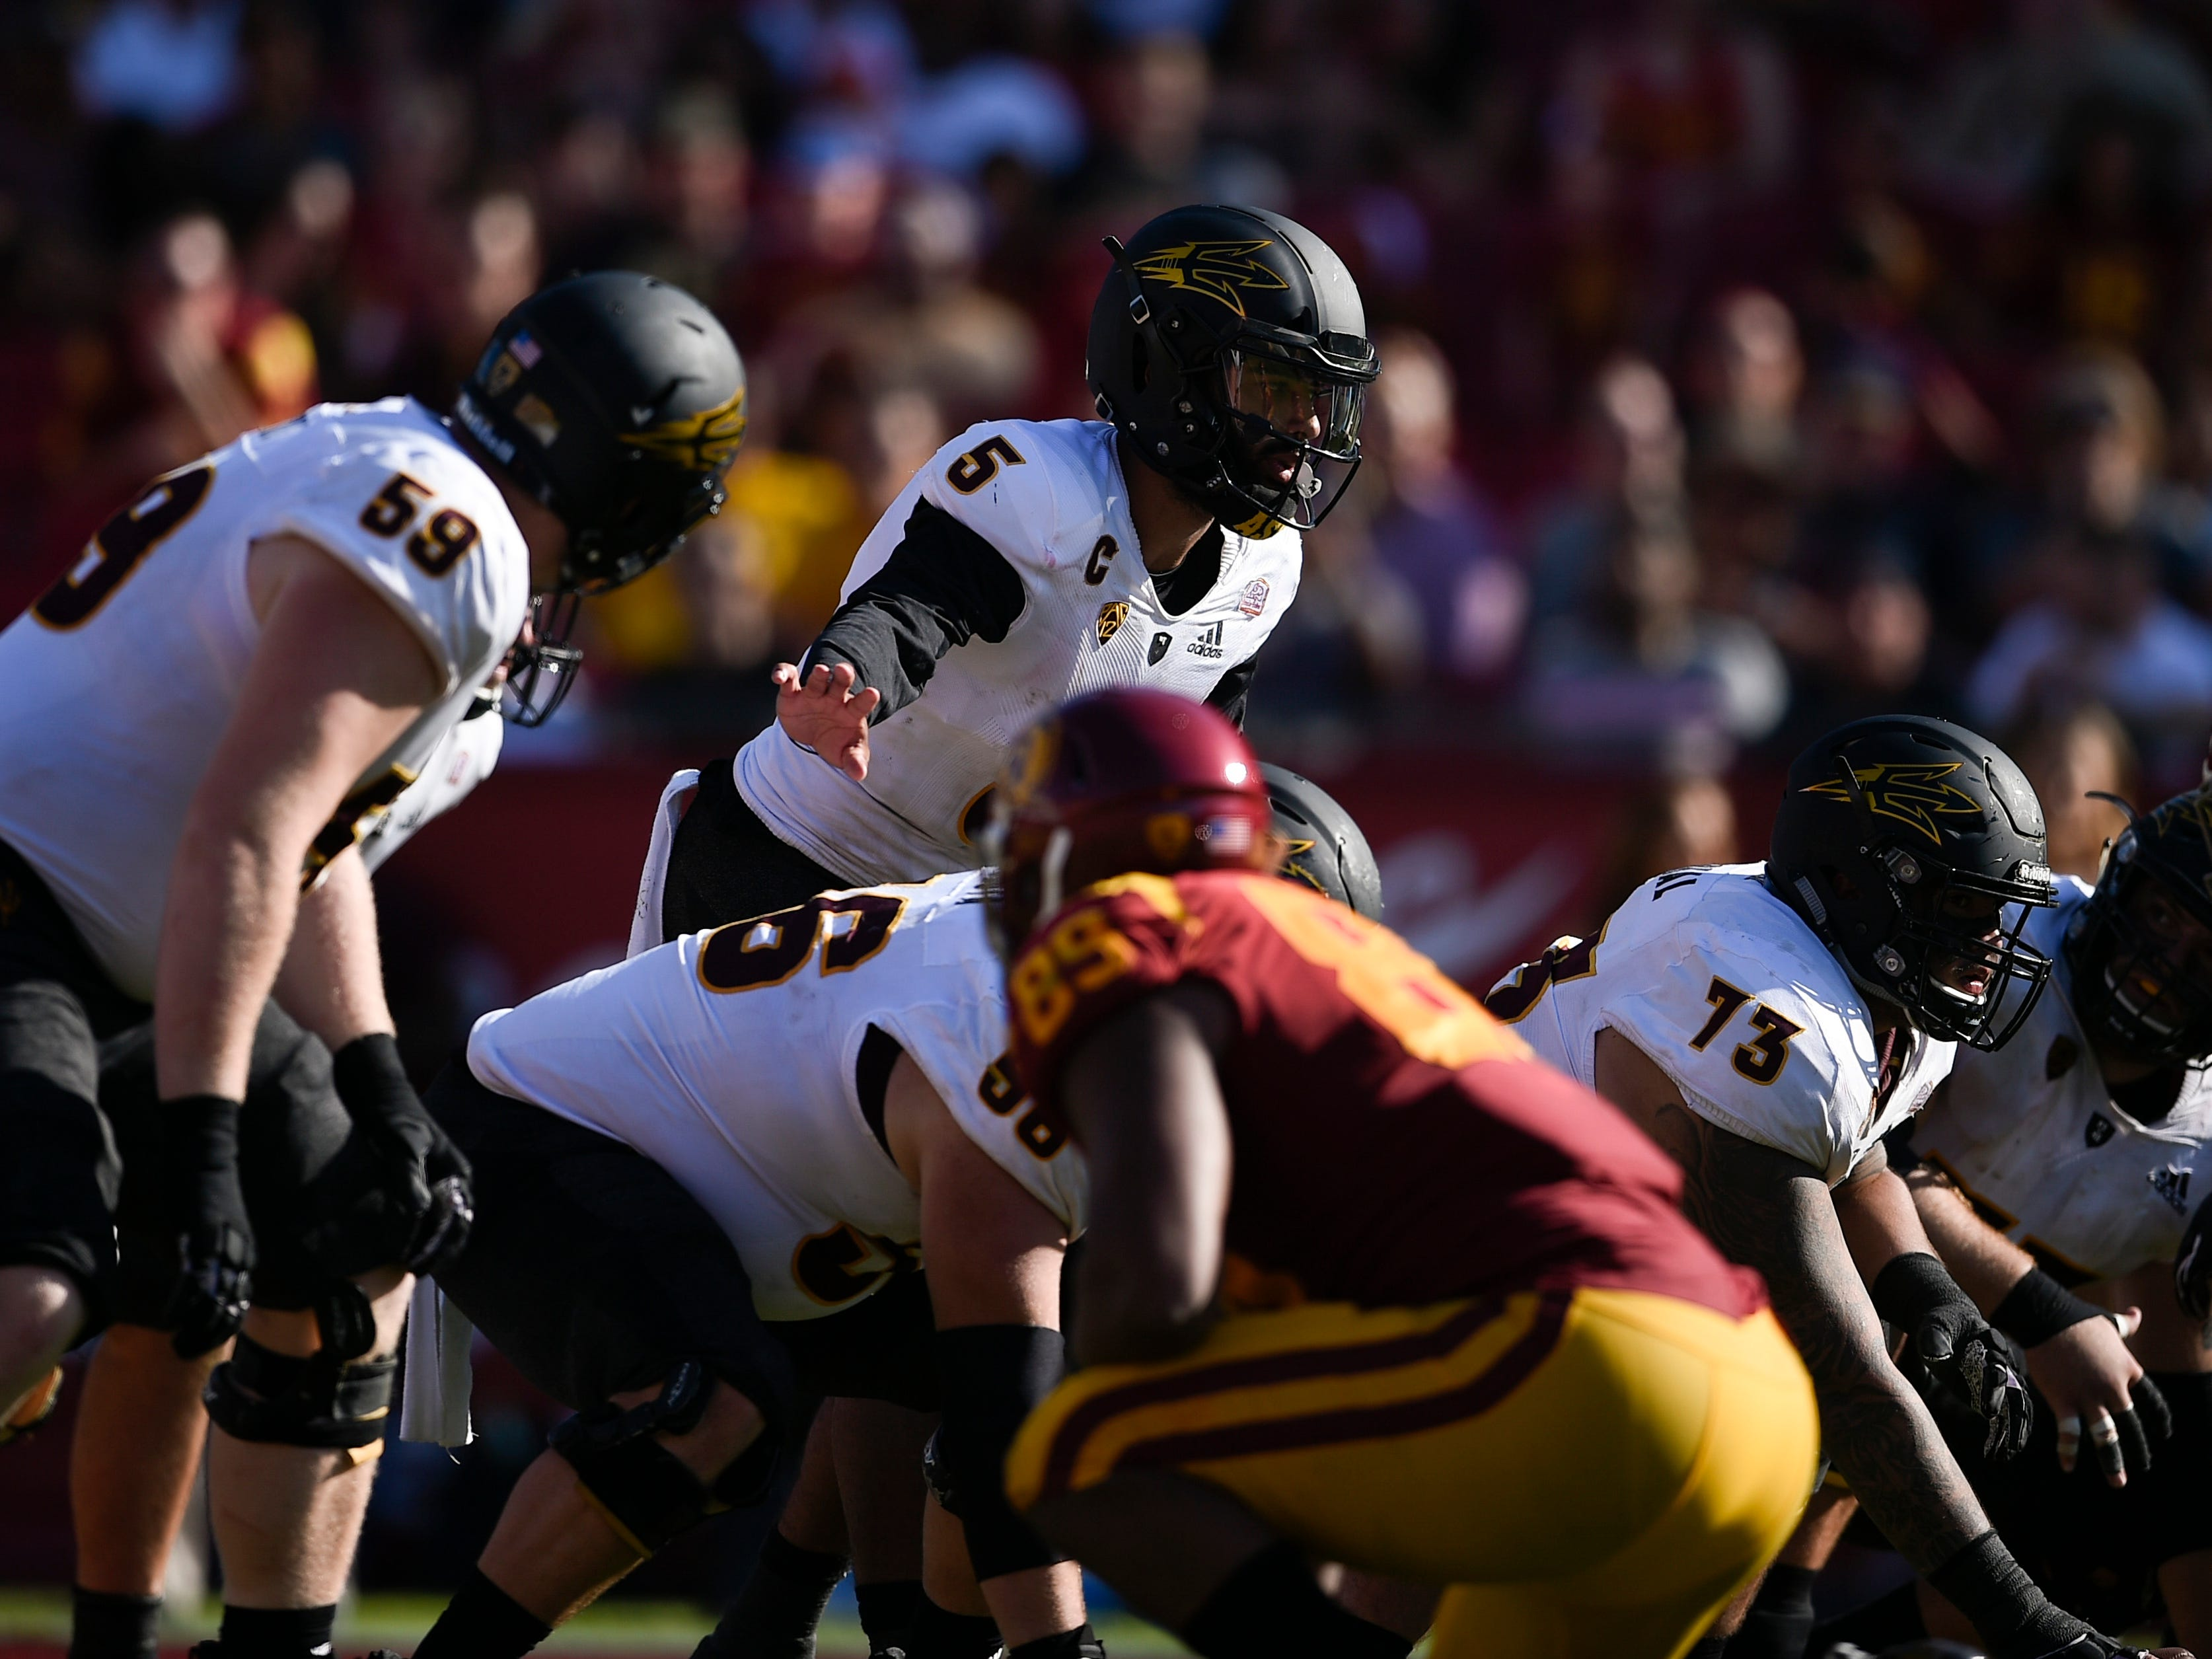 Oct 27, 2018; Los Angeles, CA, USA; Arizona State Sun Devils quarterback Manny Wilkins (5) prepares to snap the ball against the Southern California Trojans during the second half at Los Angeles Memorial Coliseum. Mandatory Credit: Kelvin Kuo-USA TODAY Sports